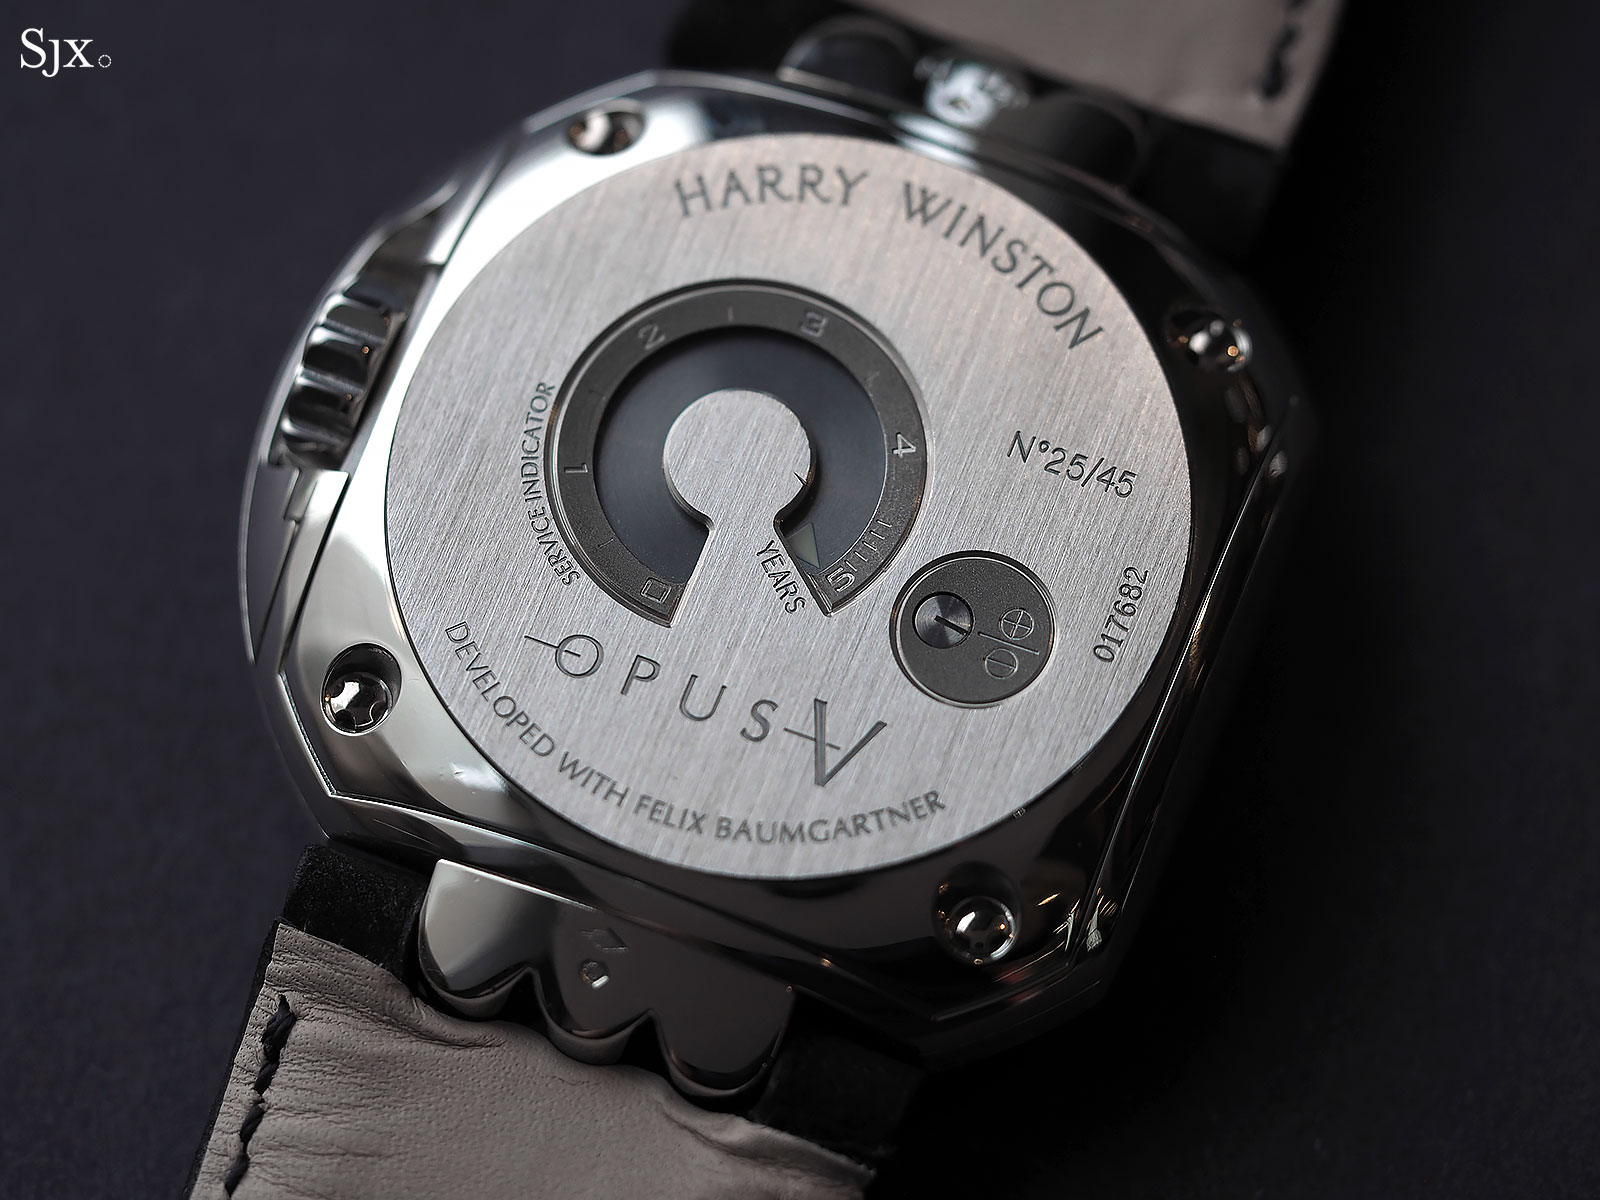 Harry Winston Opus V platinum 6